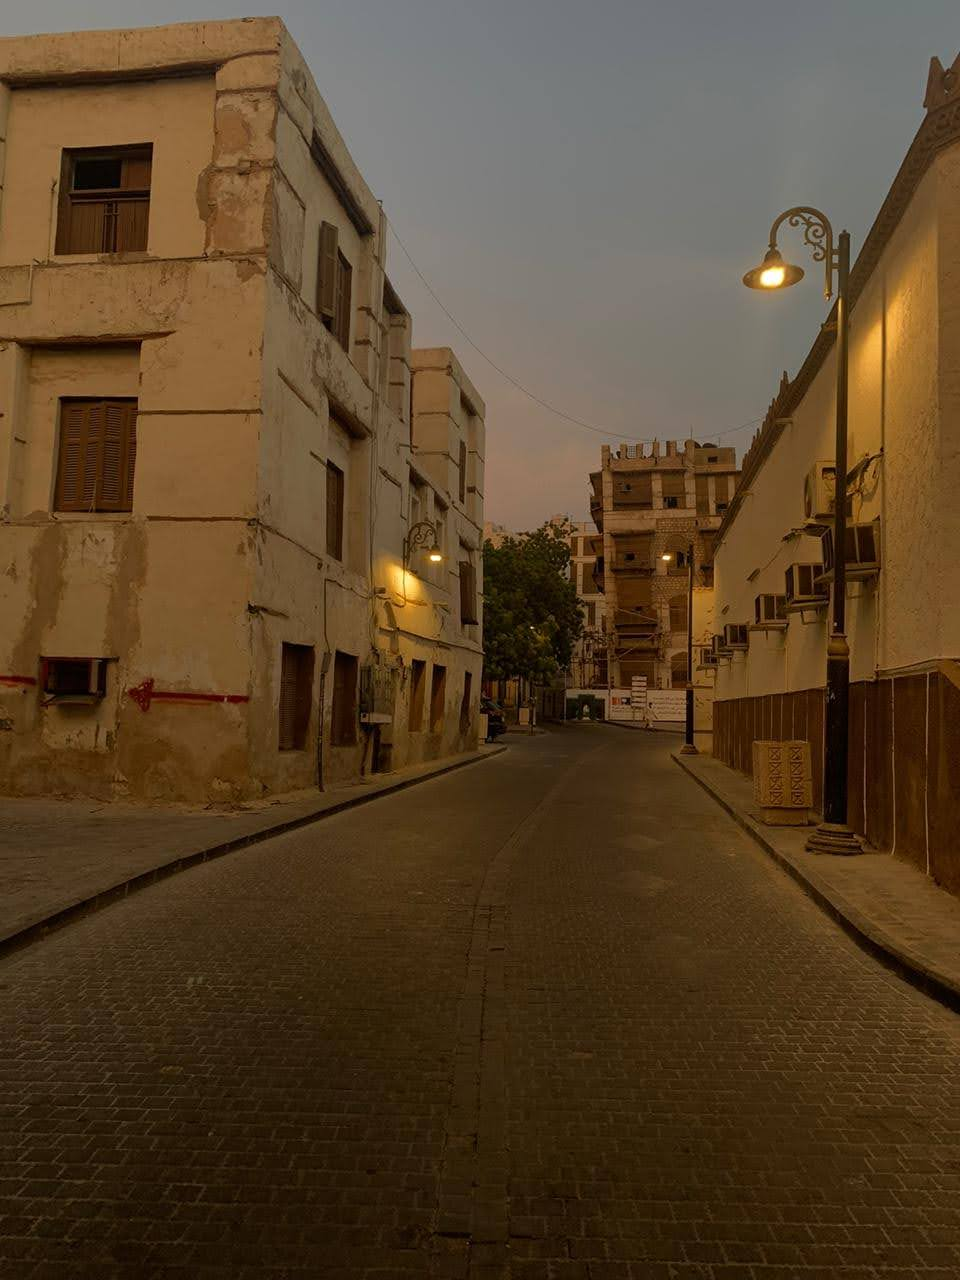 Jeddah in the evening